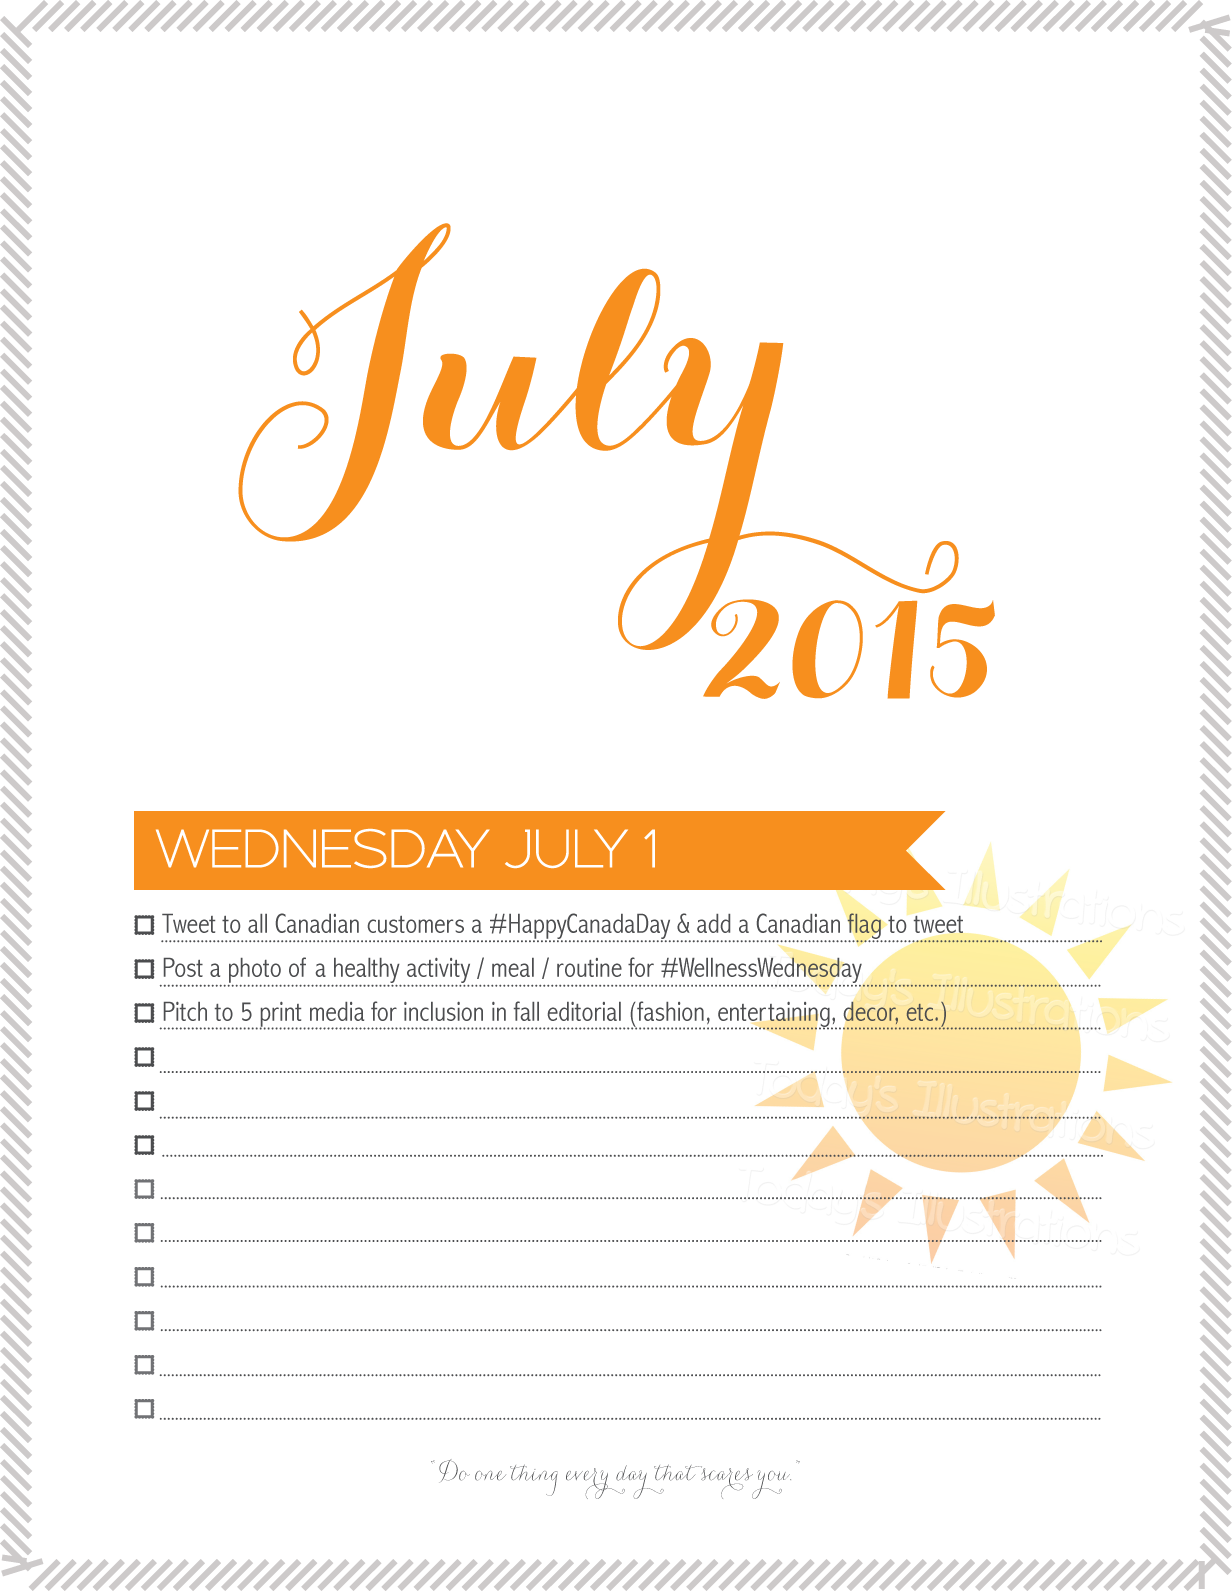 marketing calendar for july